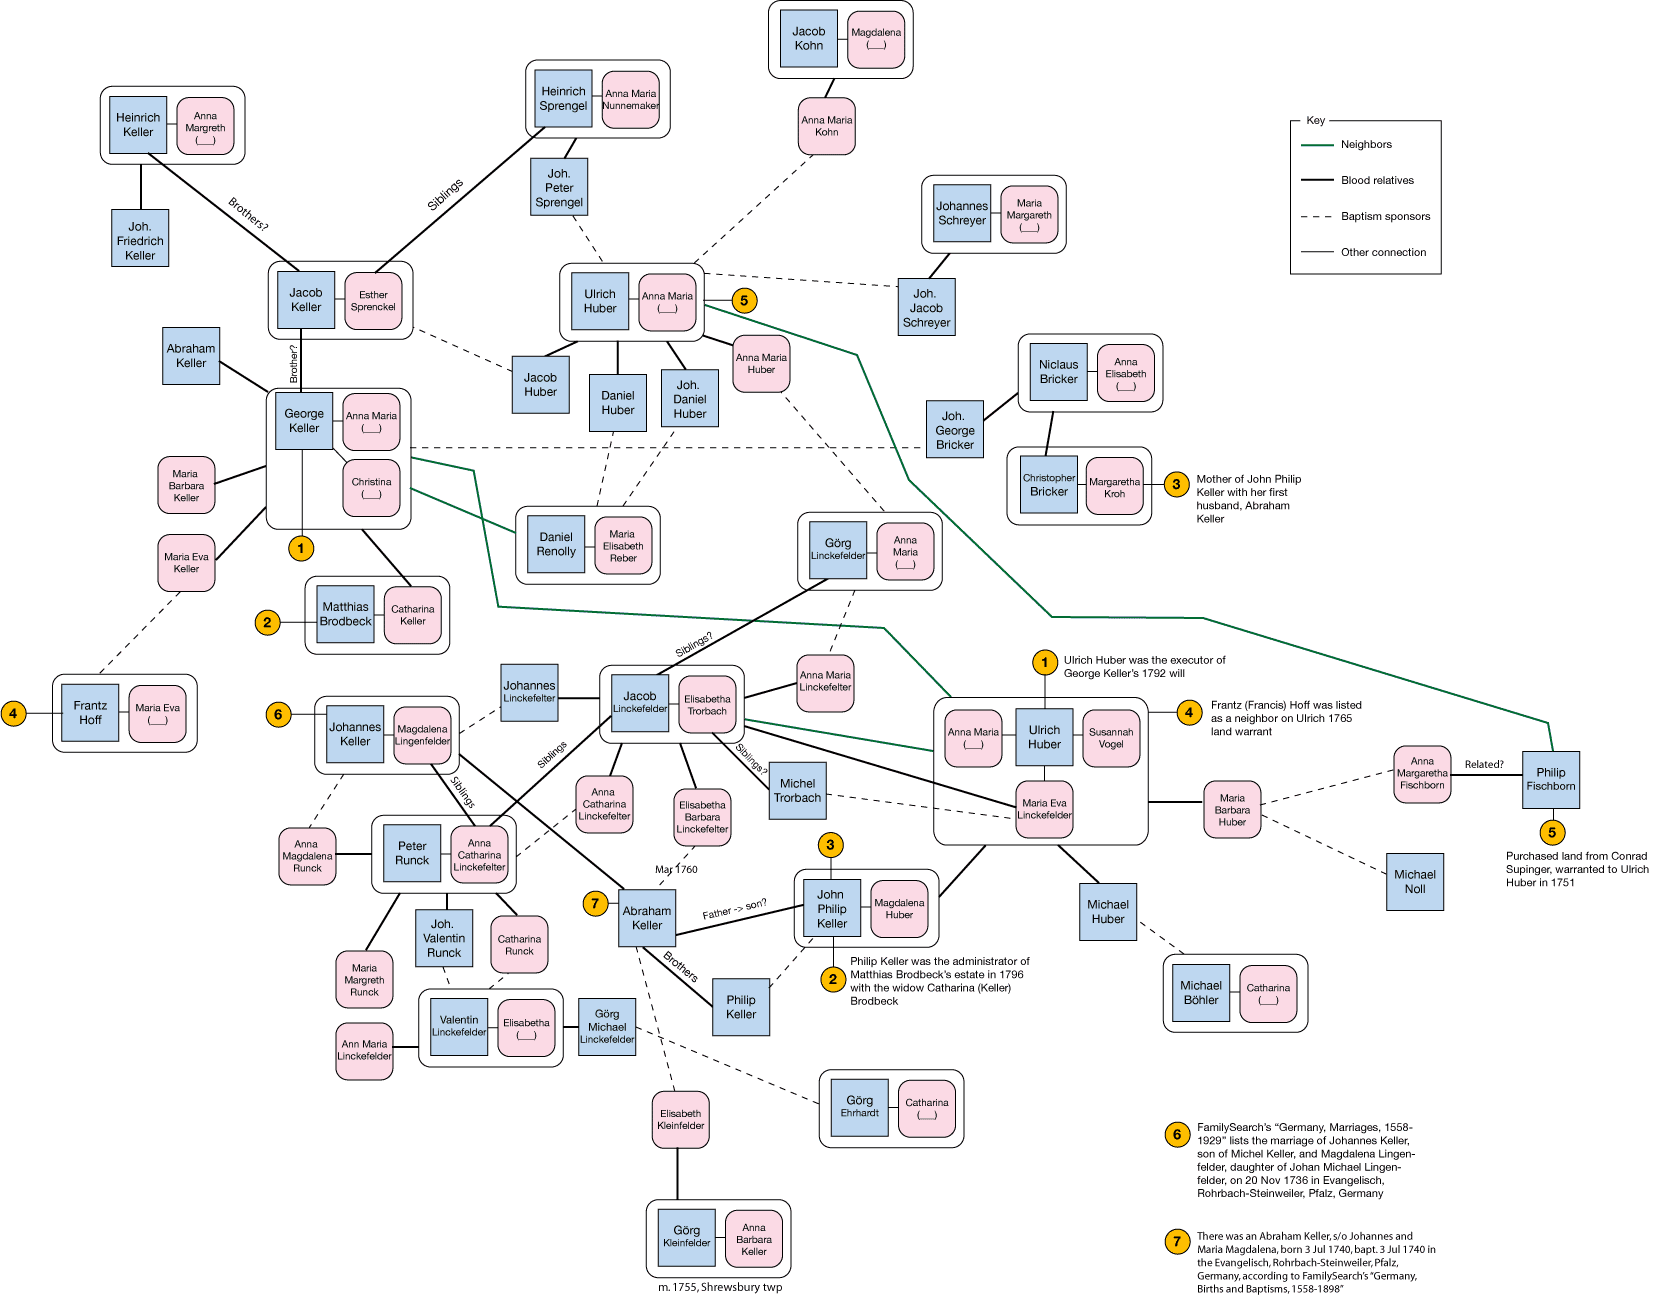 Ulrich Hoover: Visualizing Connections